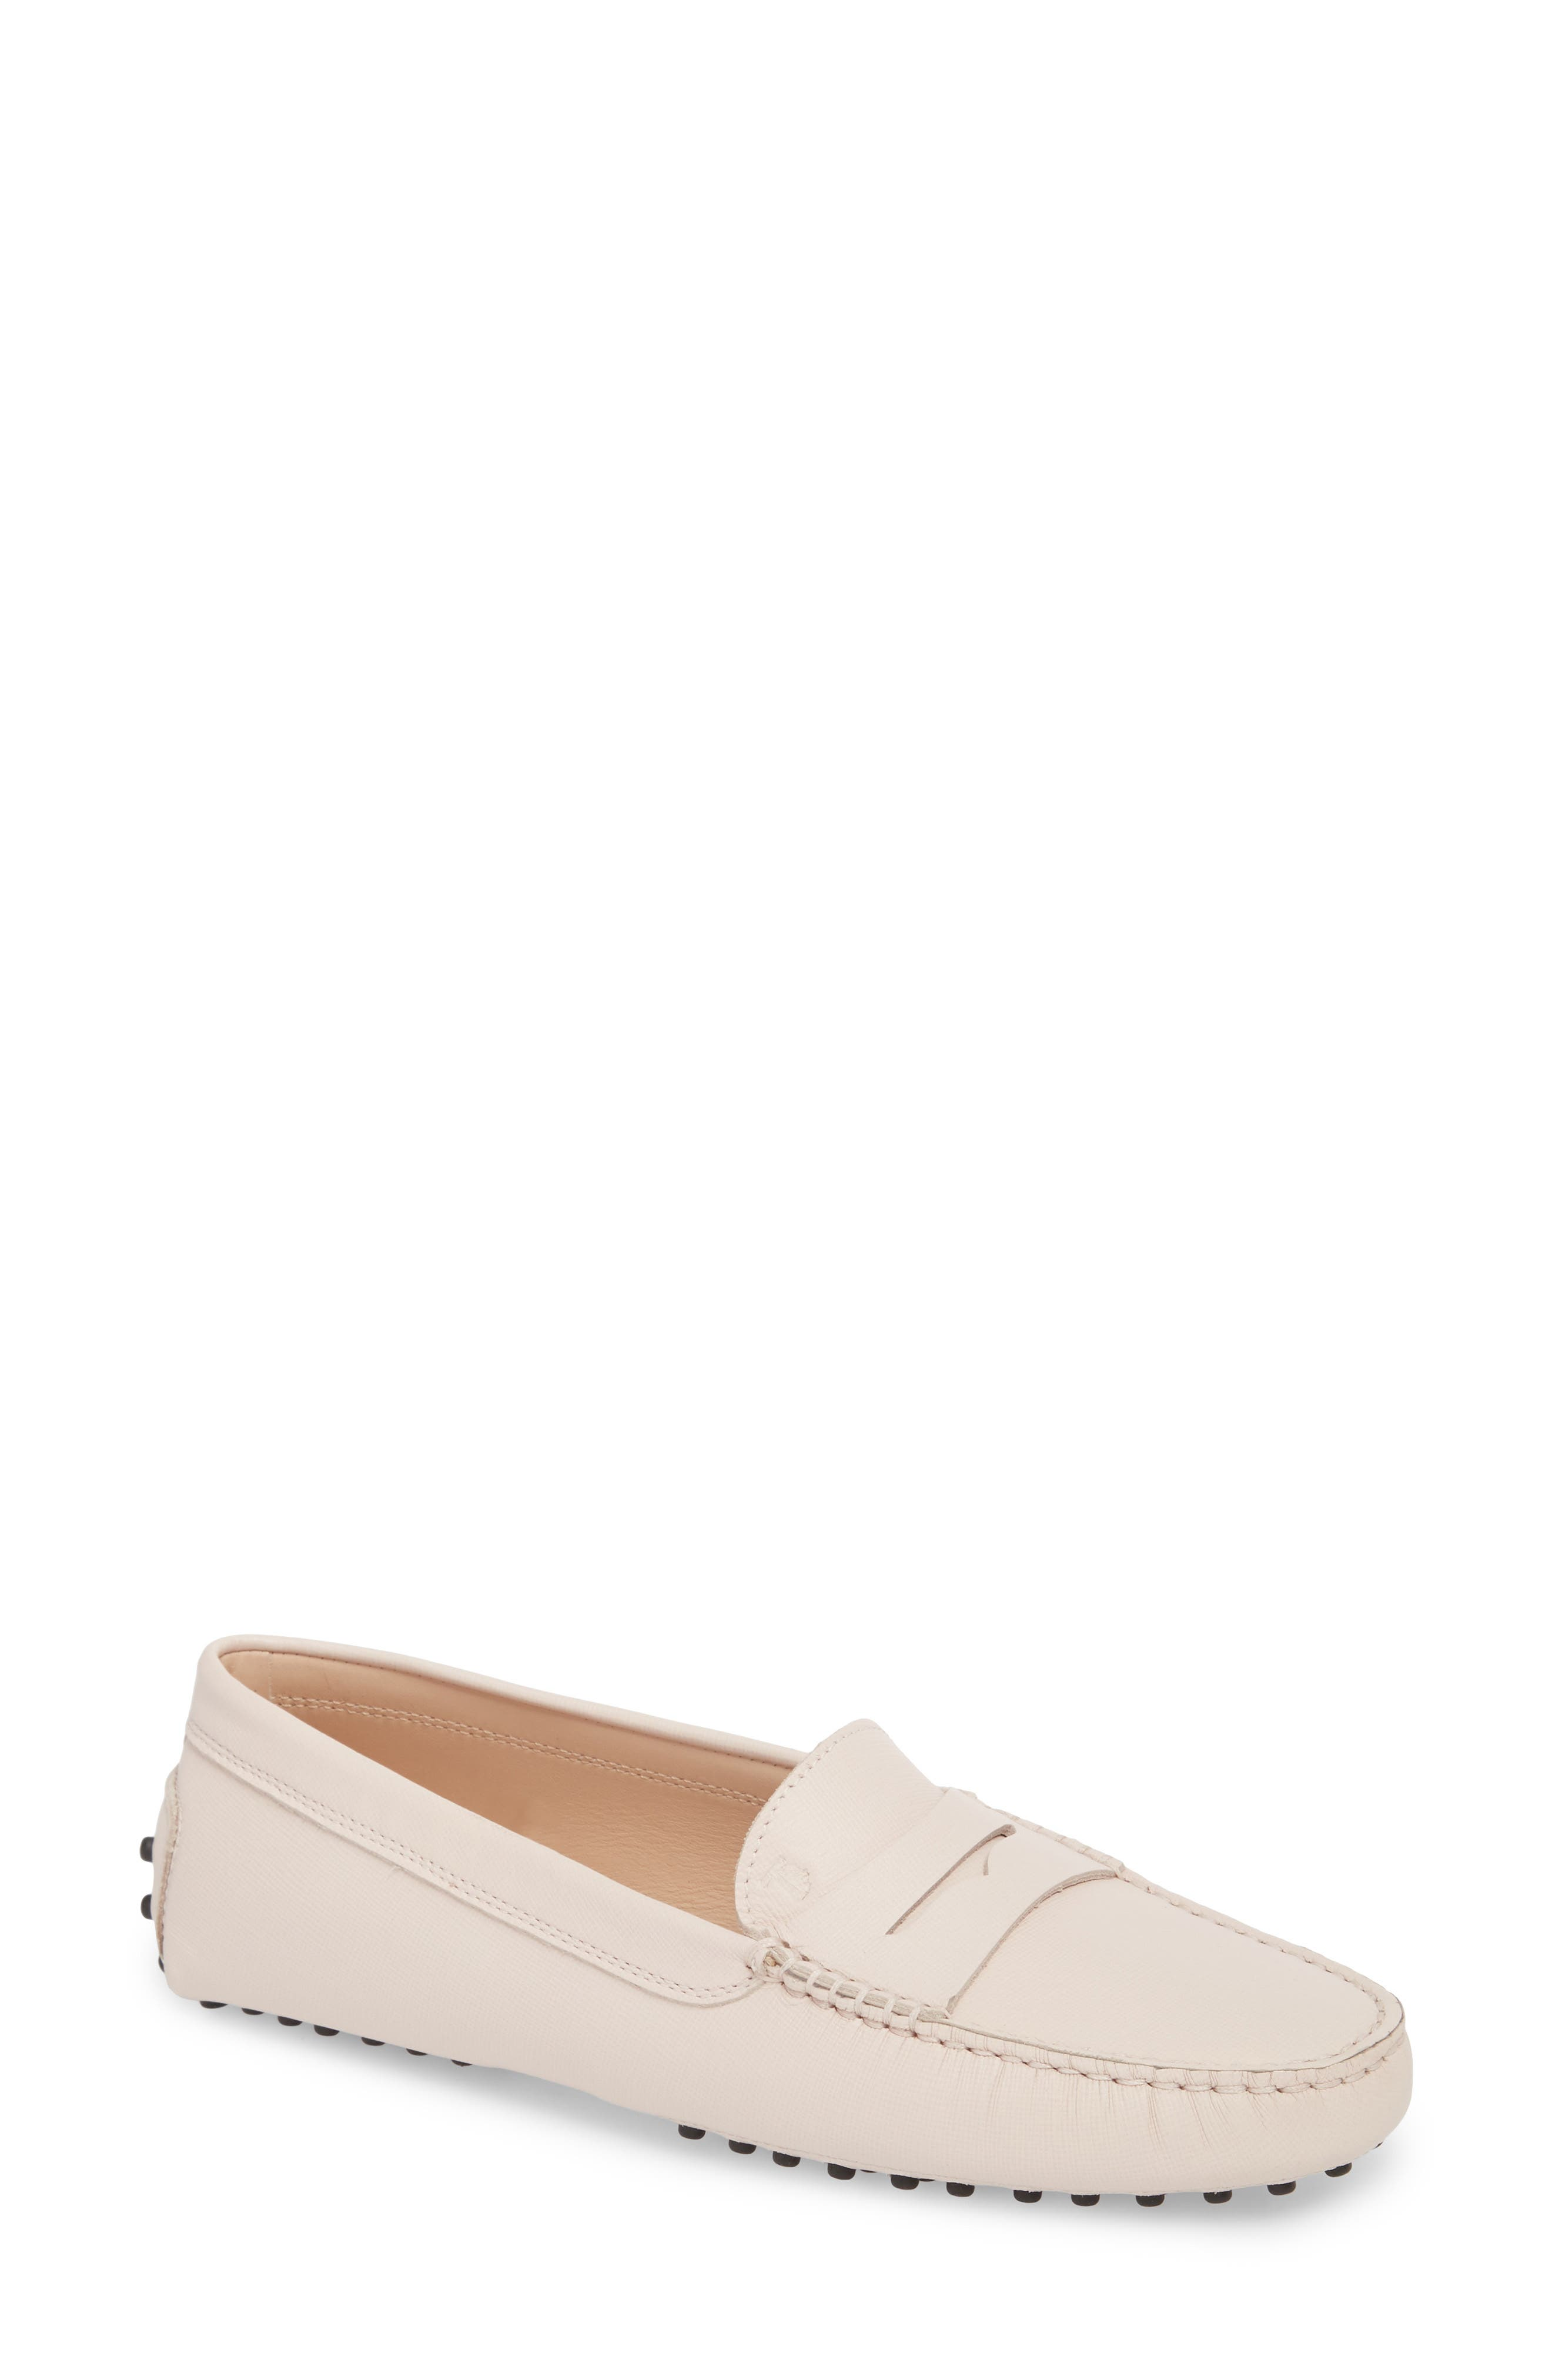 Gommino Grained-Leather Loafers in Light Pink